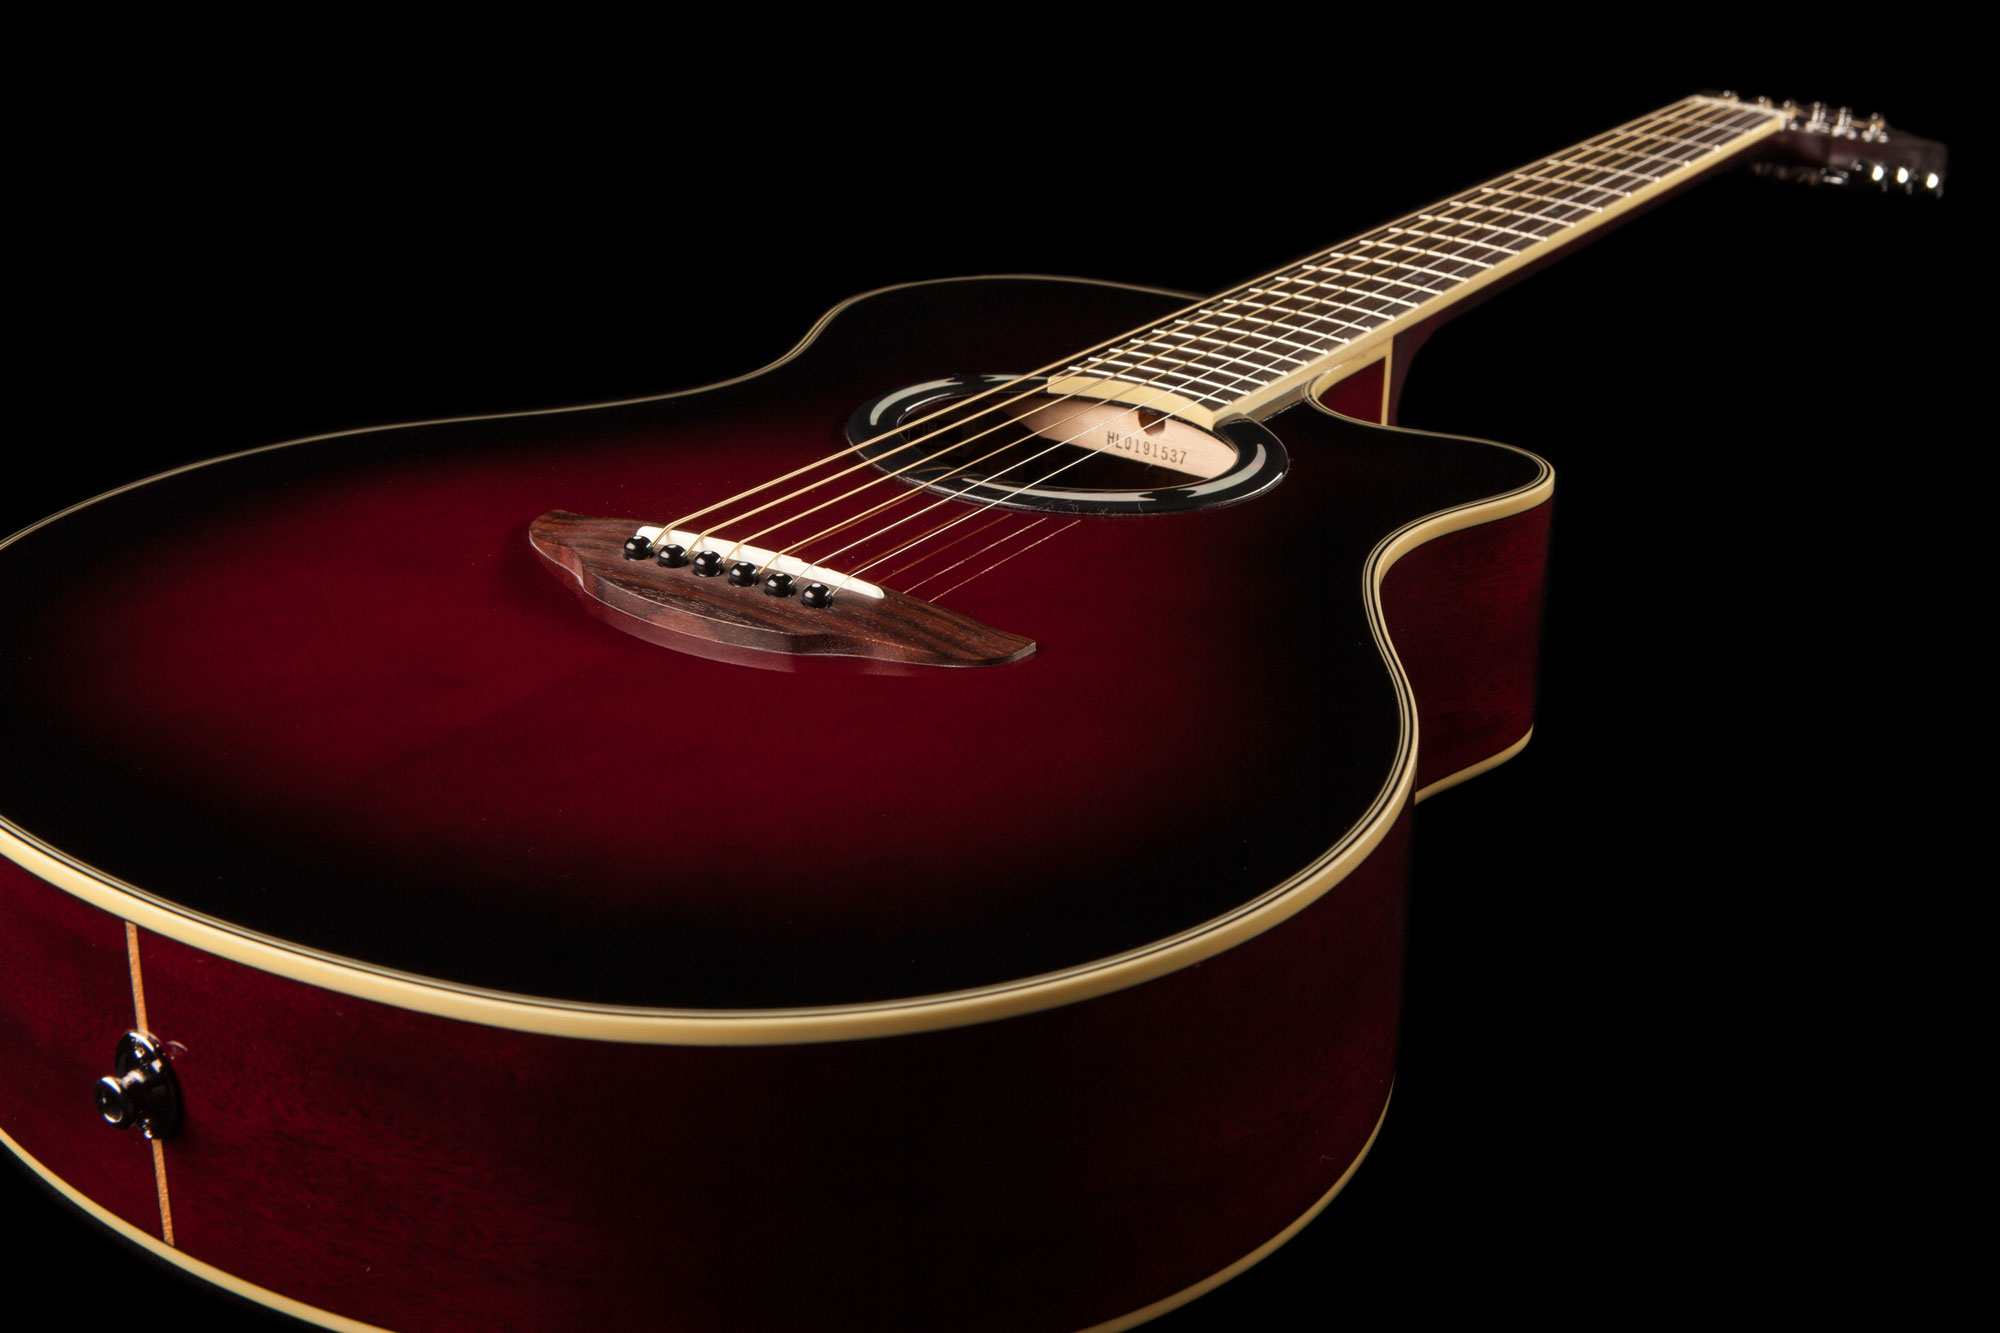 yamaha apx500 mkiii electro acoustic guitar in dusk sun. Black Bedroom Furniture Sets. Home Design Ideas